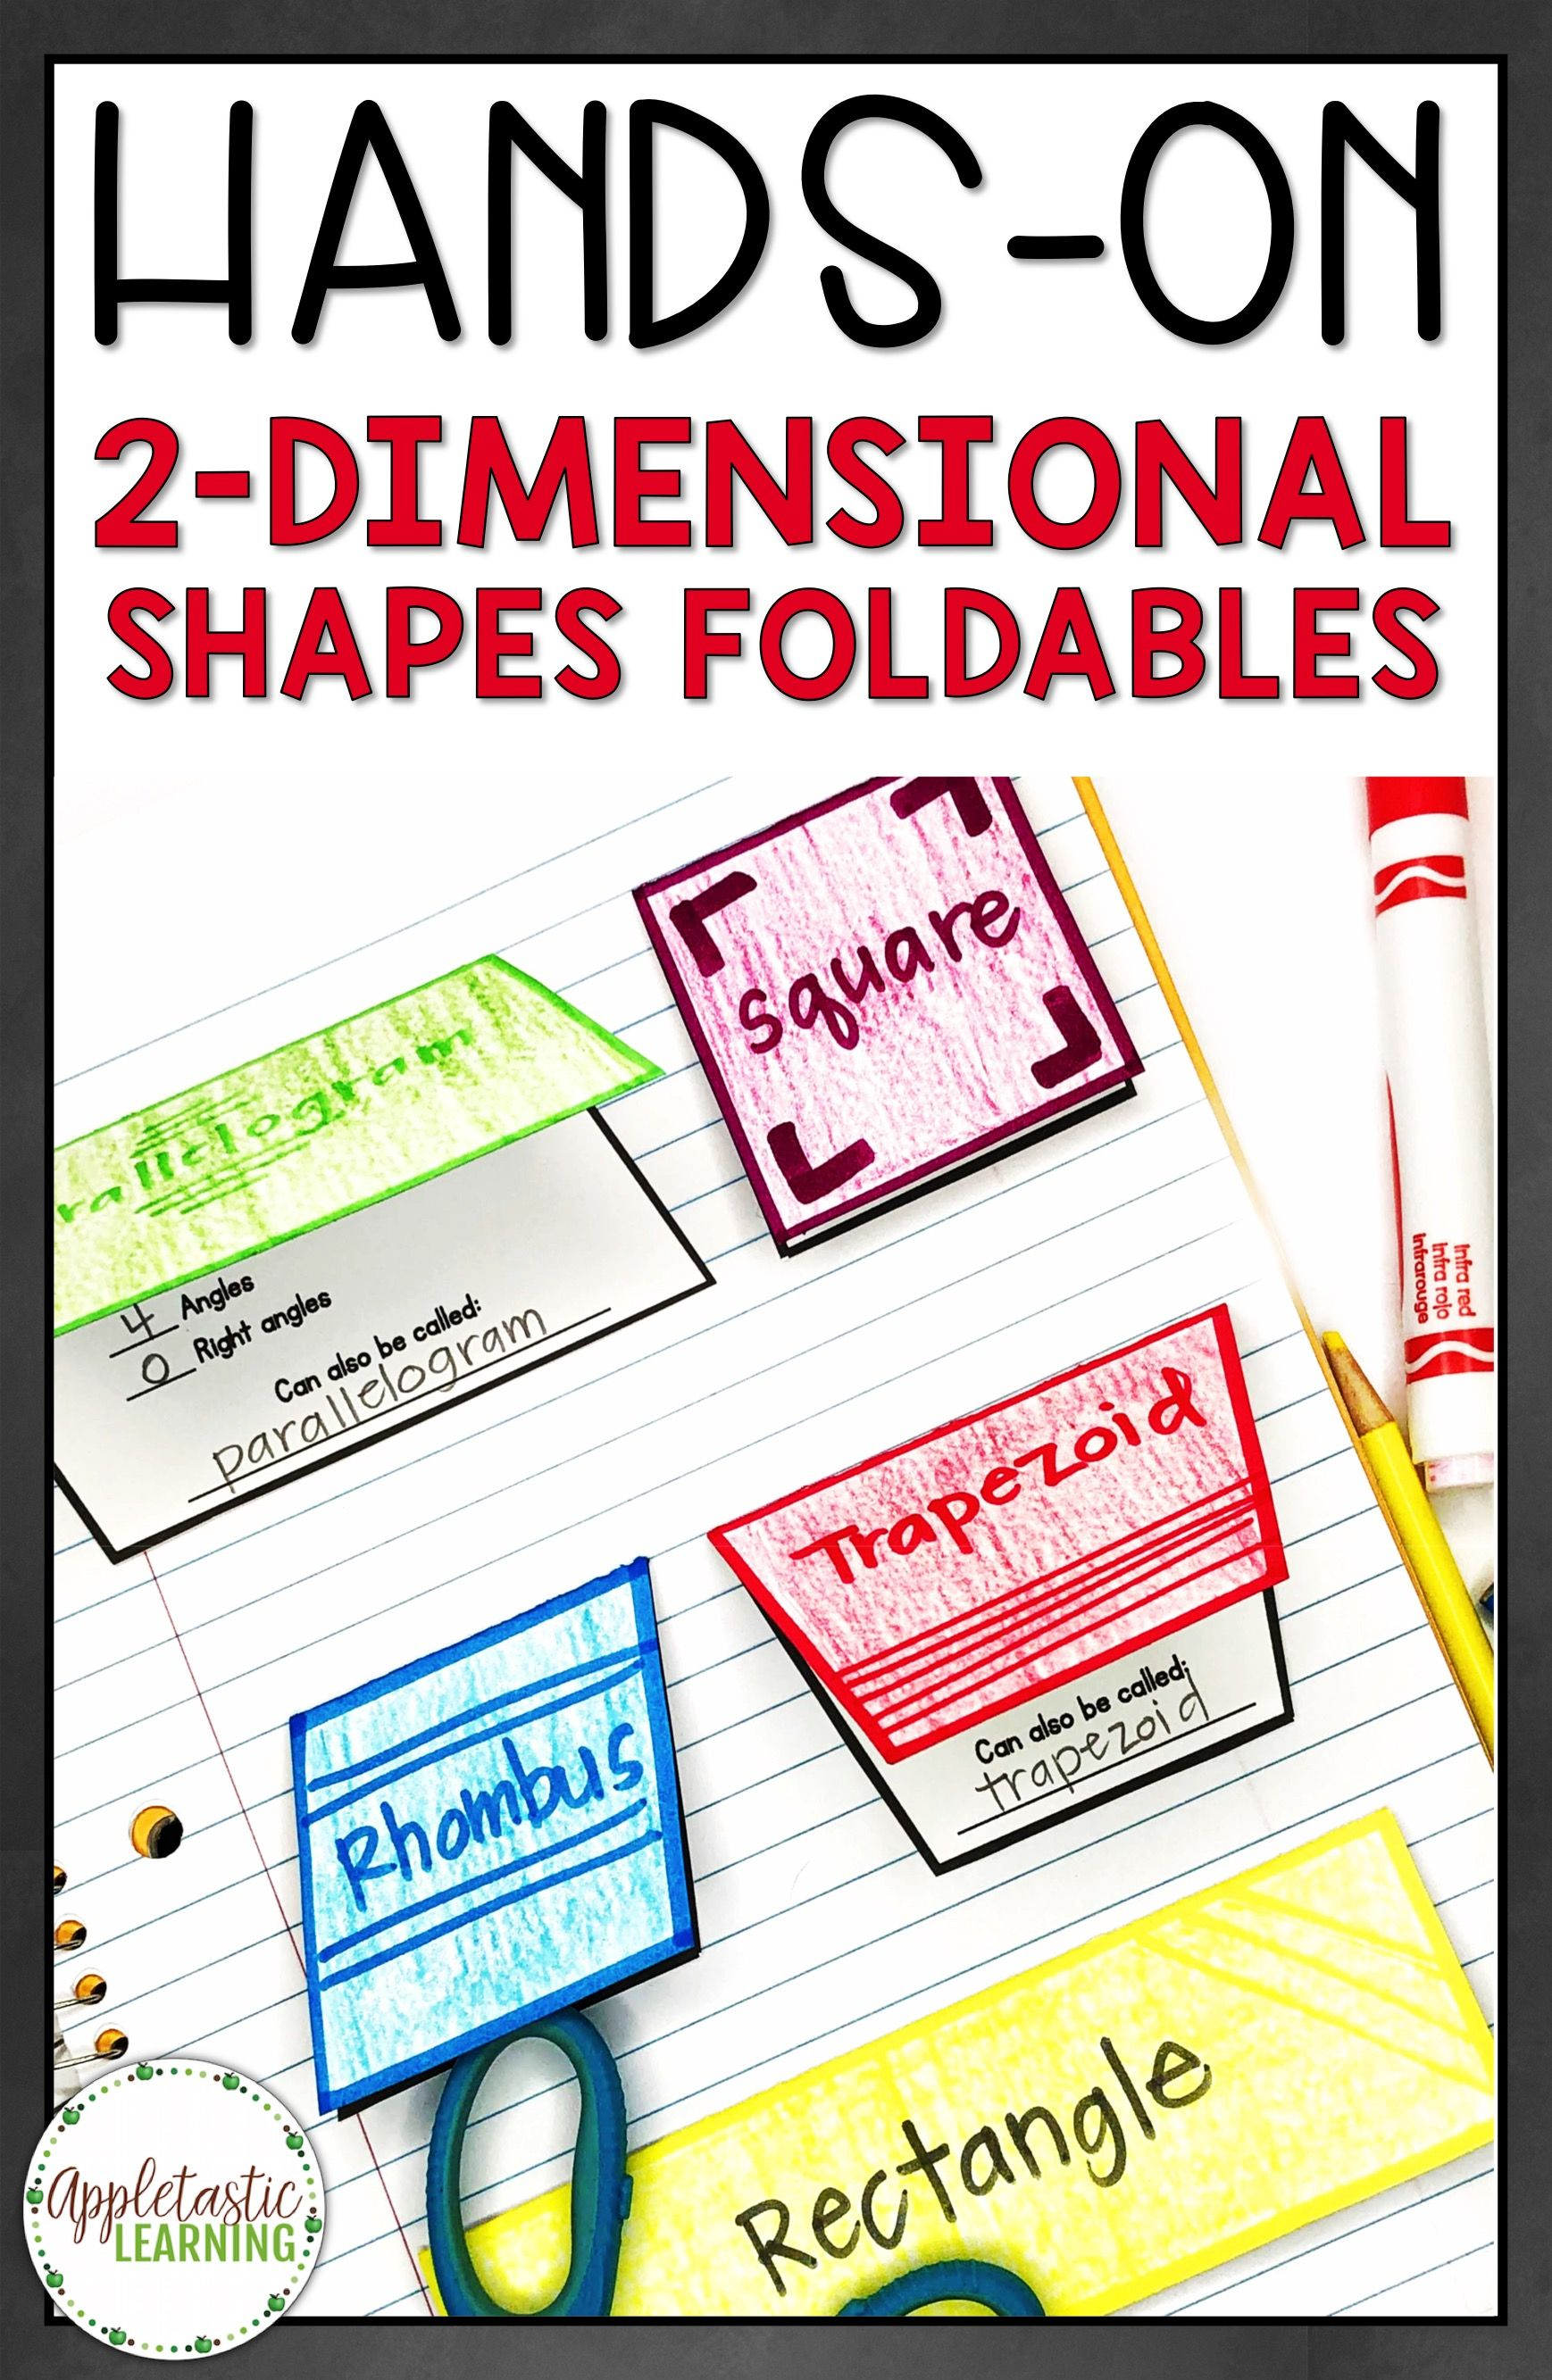 hight resolution of 2D Shapes Foldables and 2 Dimensional Shapes Foldables are fun for  elementary students in 3rd grade